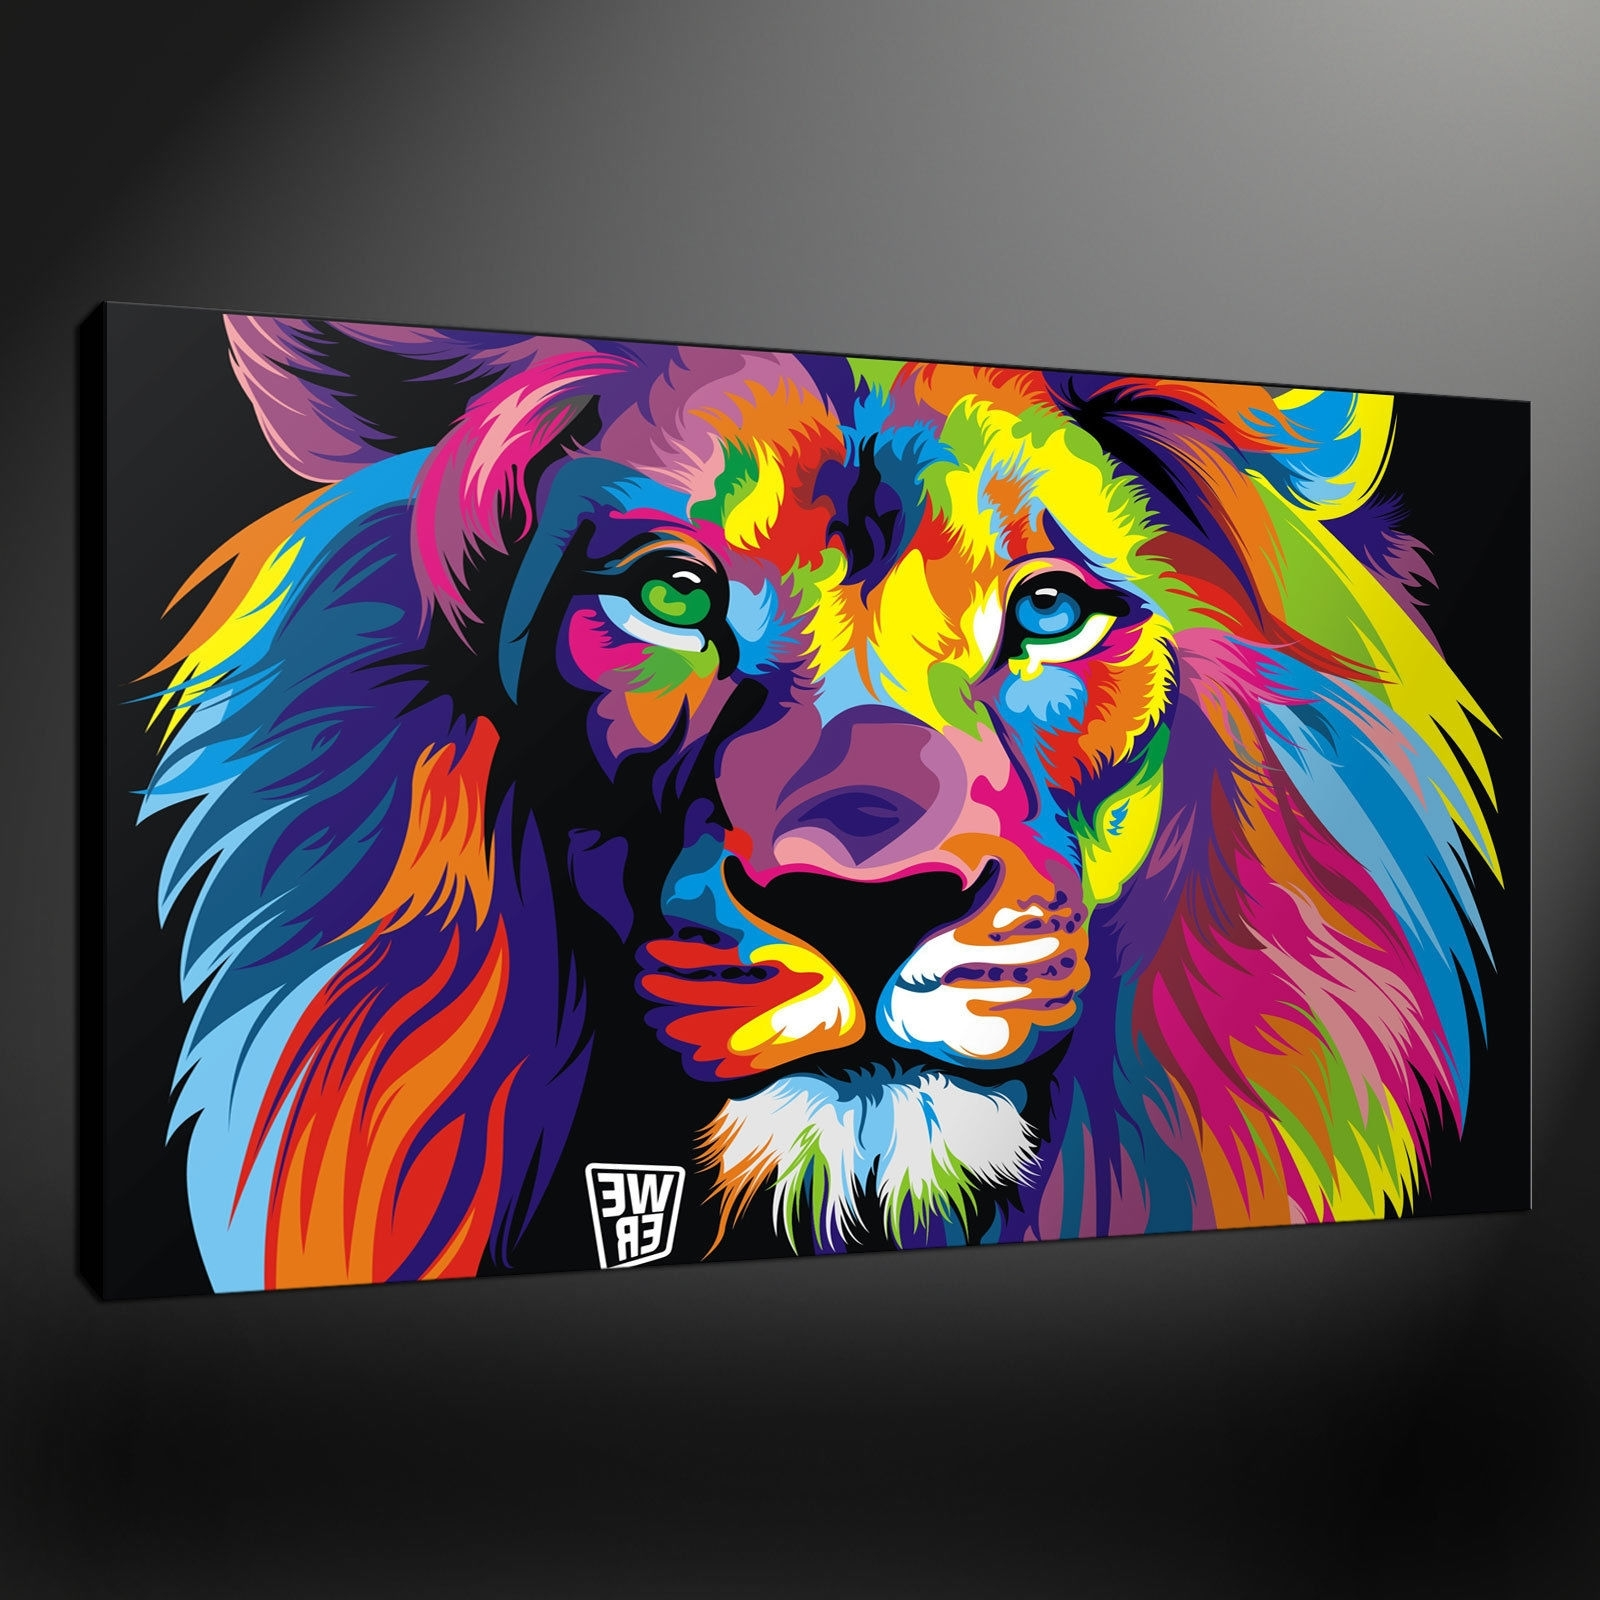 Well Known Abstract Lion Quality Canvas Print Picture Wall Art Design Free Uk With Regard To Lion Wall Art (View 14 of 15)